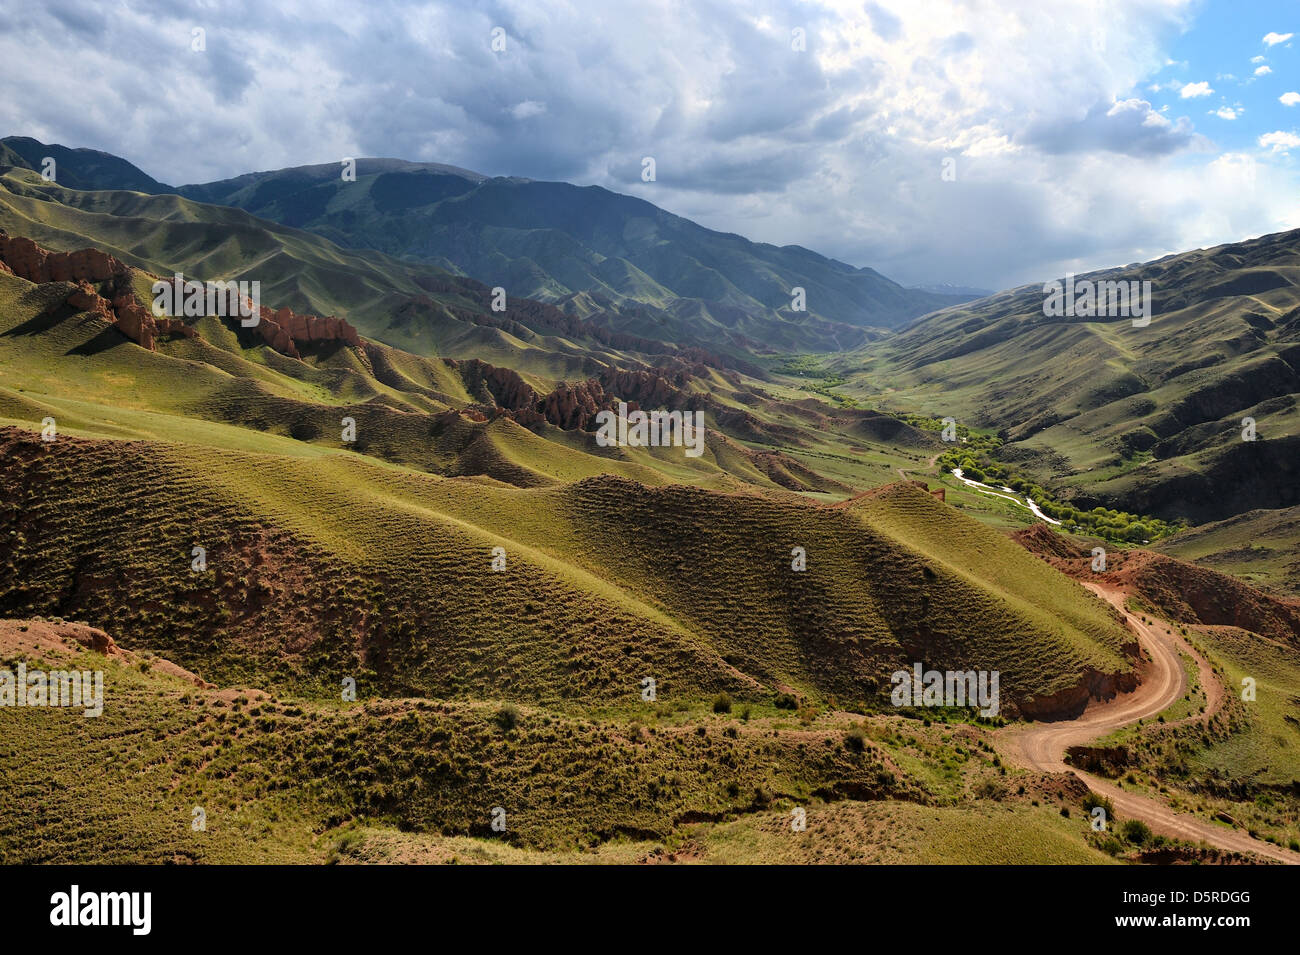 Road in valley, Asy river canyon, Kazakhstan - Stock Image